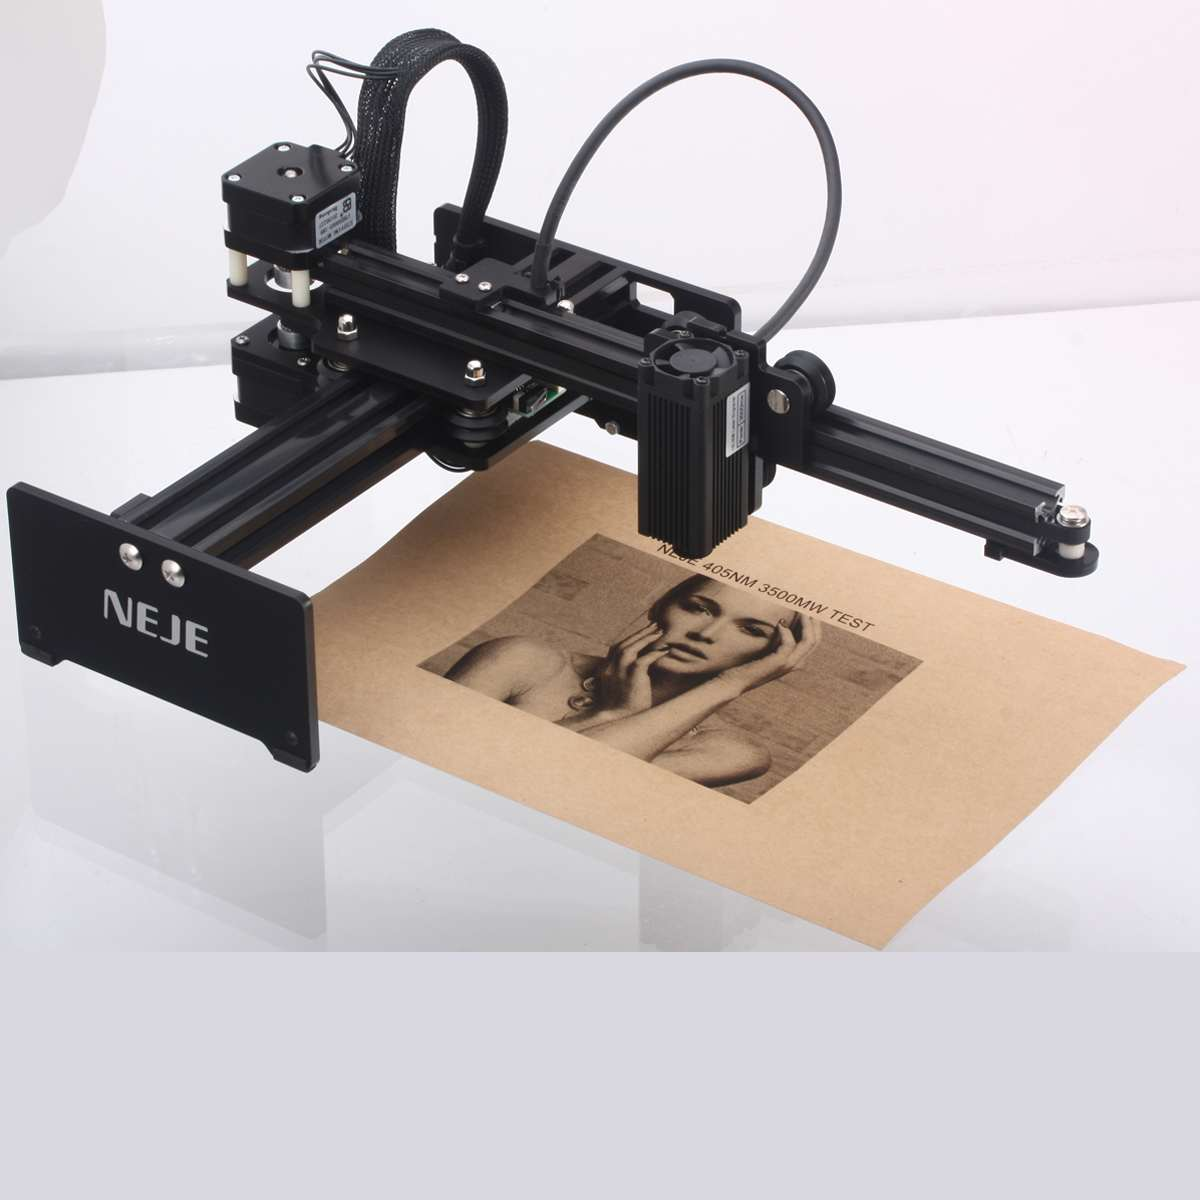 405nm 3500mw High Speed Laser Engraving Machine DIY CNC Laser Engraver Printer Automatic Handicraft Wood Burning Tools